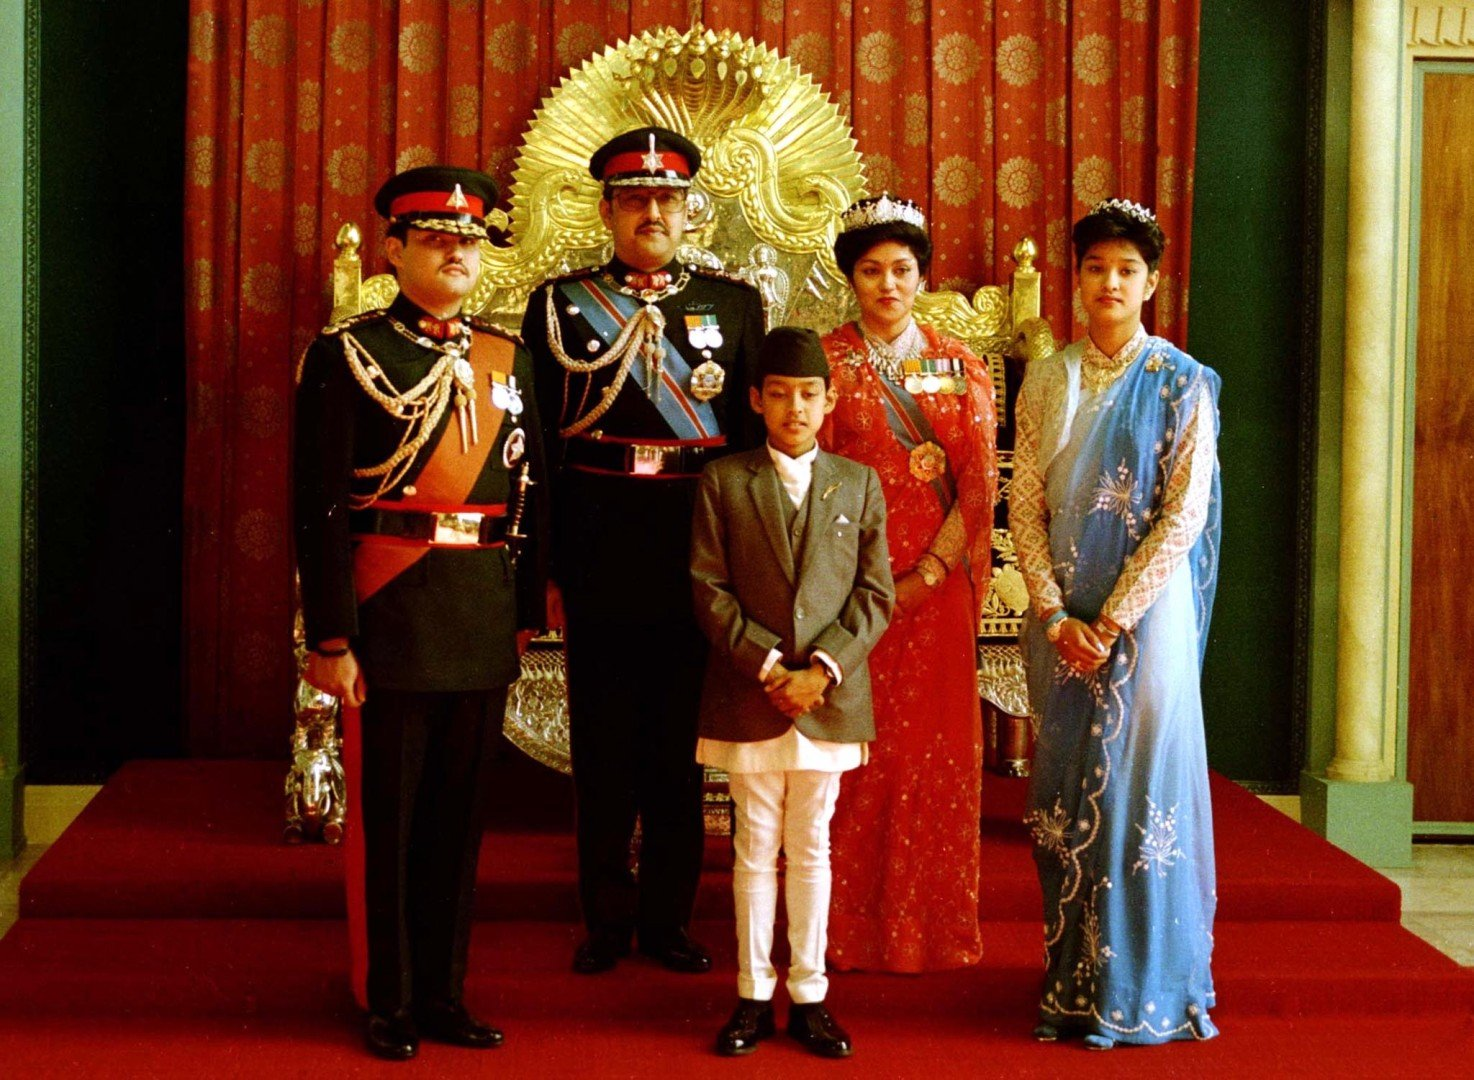 Royal mess: From a palace murder to a purged princess, Asia's